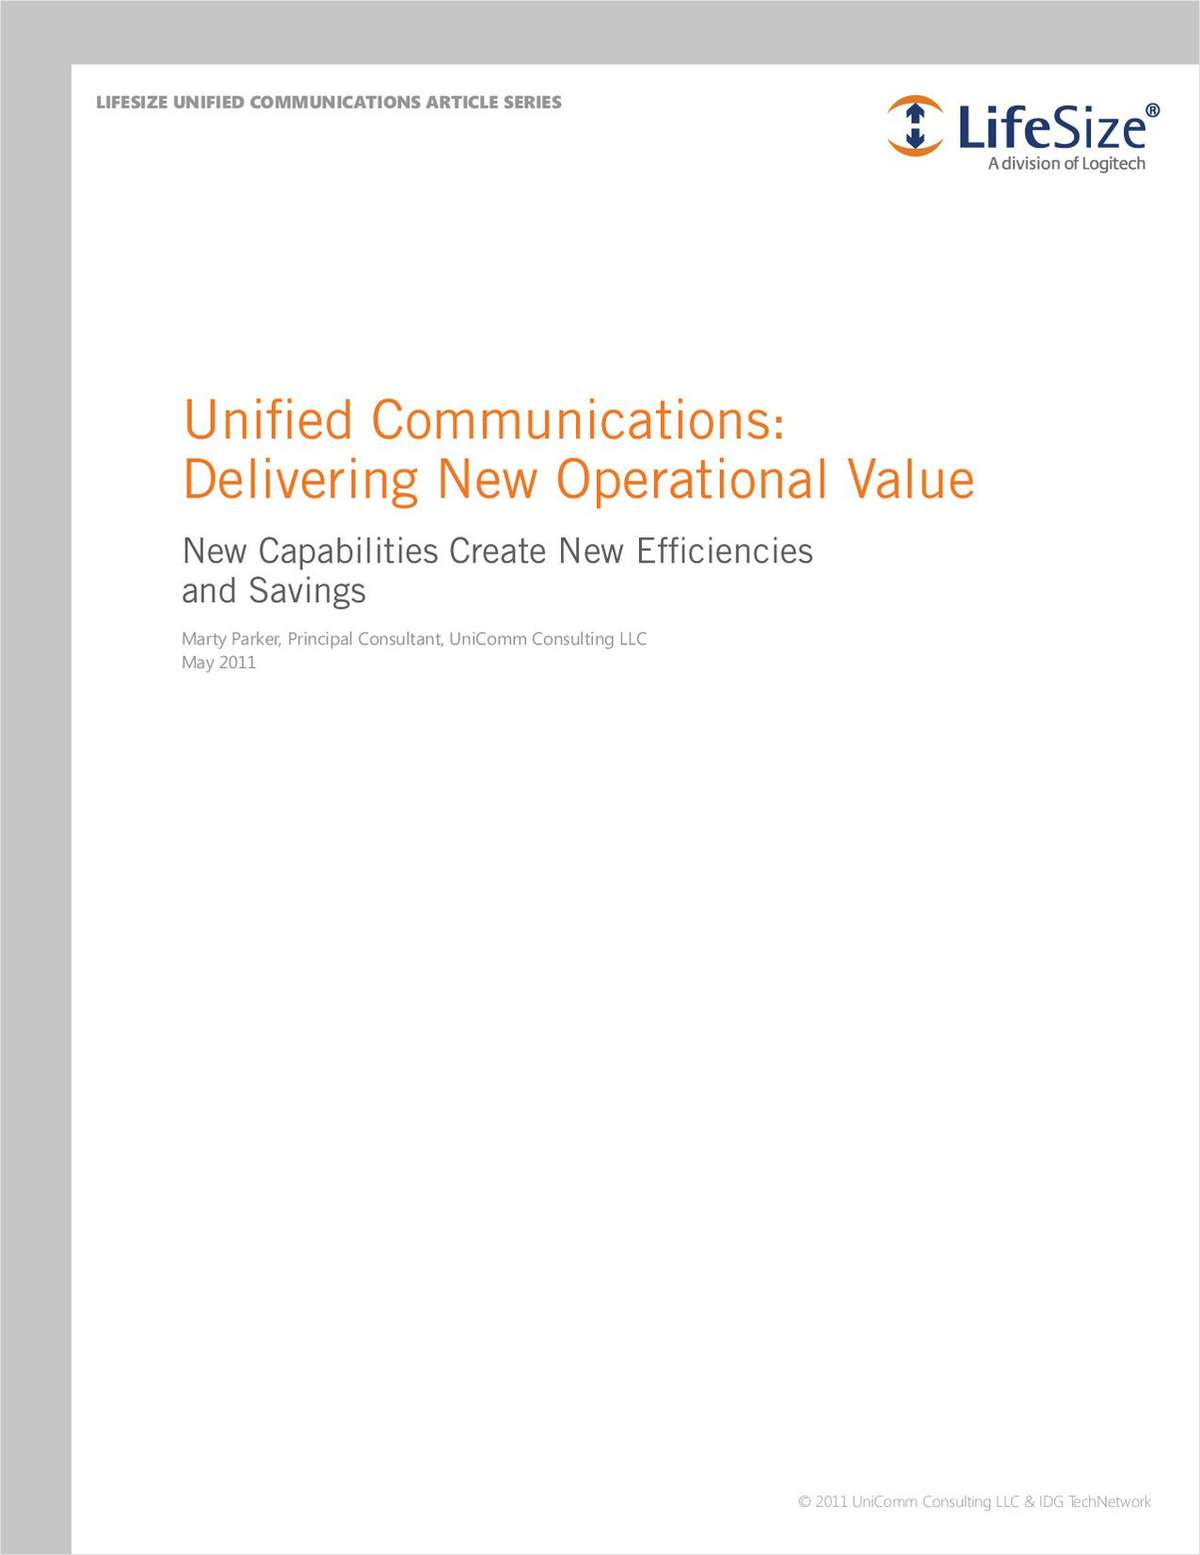 Unified Communications: Delivering New Operational Value